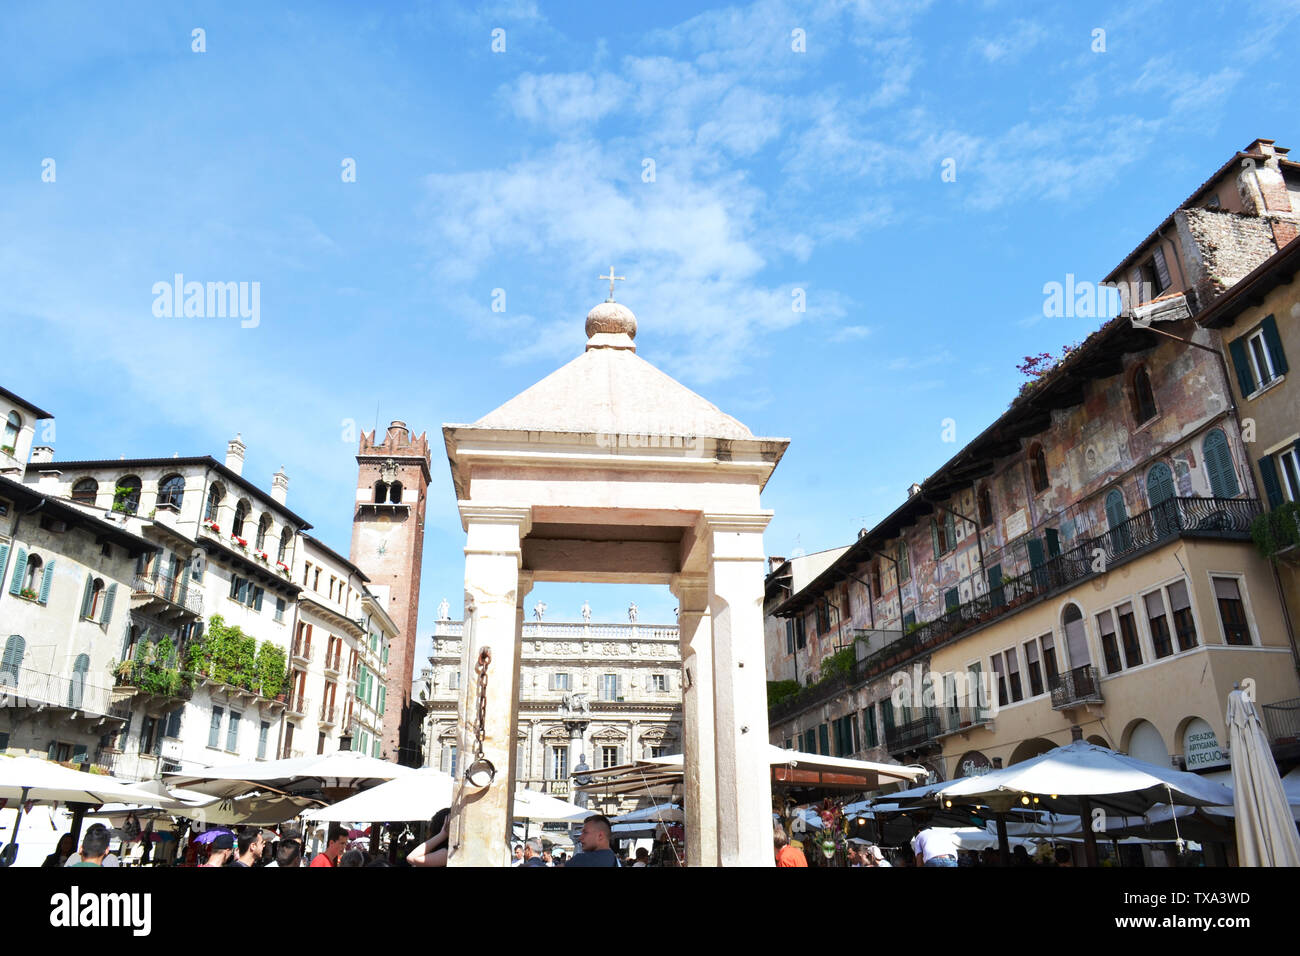 Verona/Italy - May 9, 2015: Architecture of Piazza delle Erbe in Verona during traditional fruit and vegetable market hours. Stock Photo